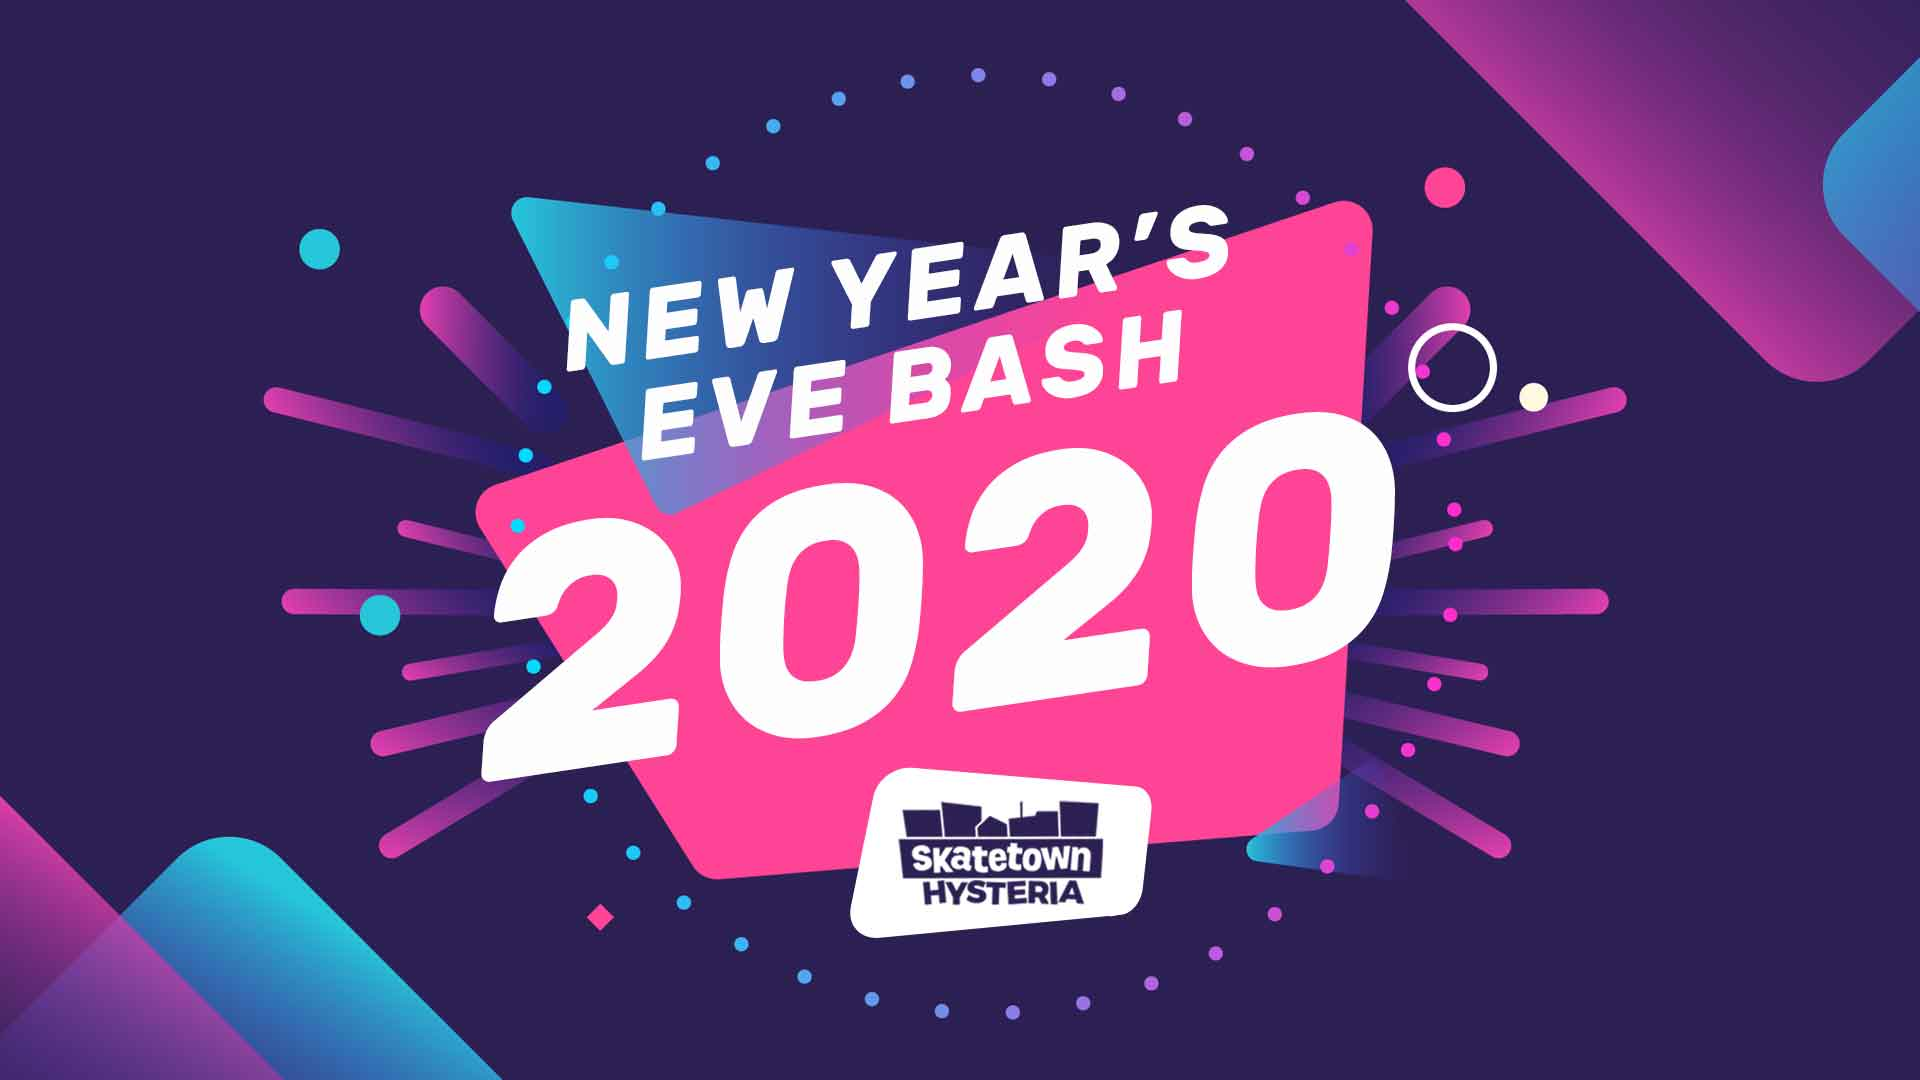 New Year's Eve Bash 2020 at Skatetown Hysteria